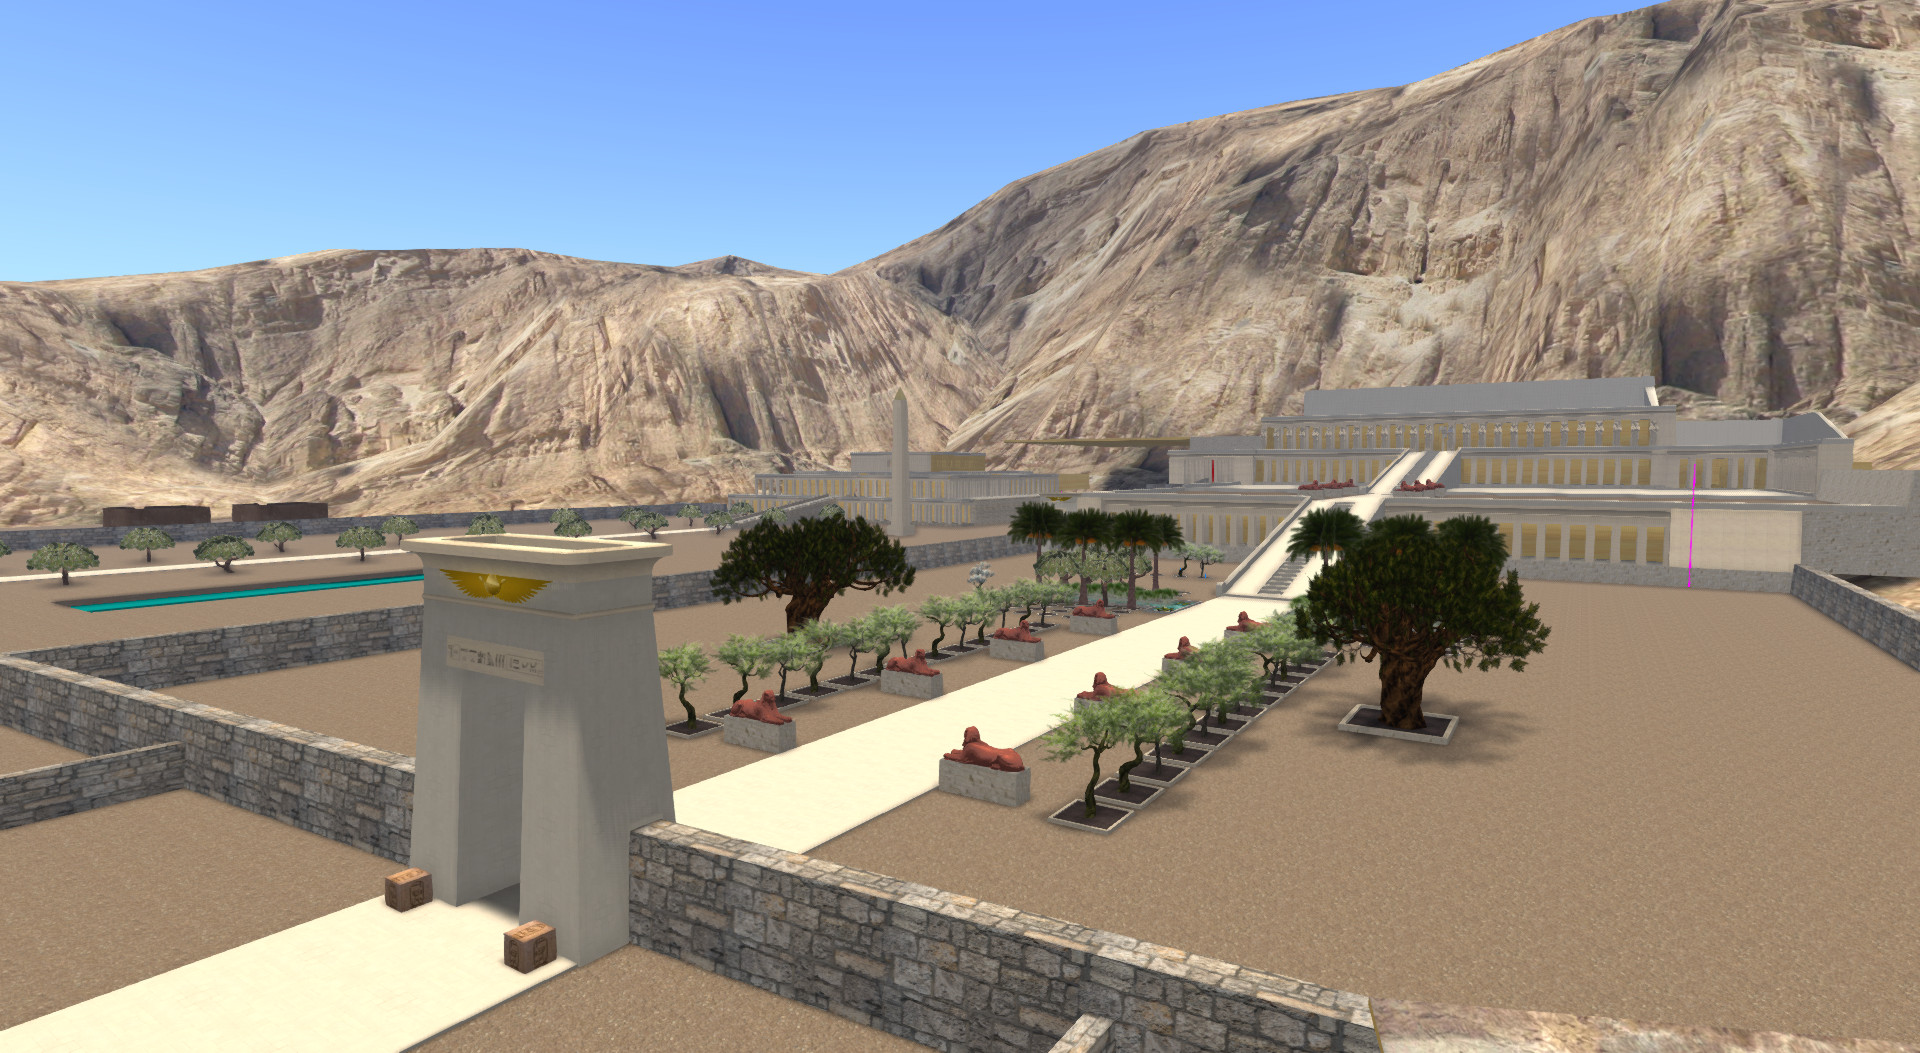 3D model of Dayr al-Bahri in the construction phase